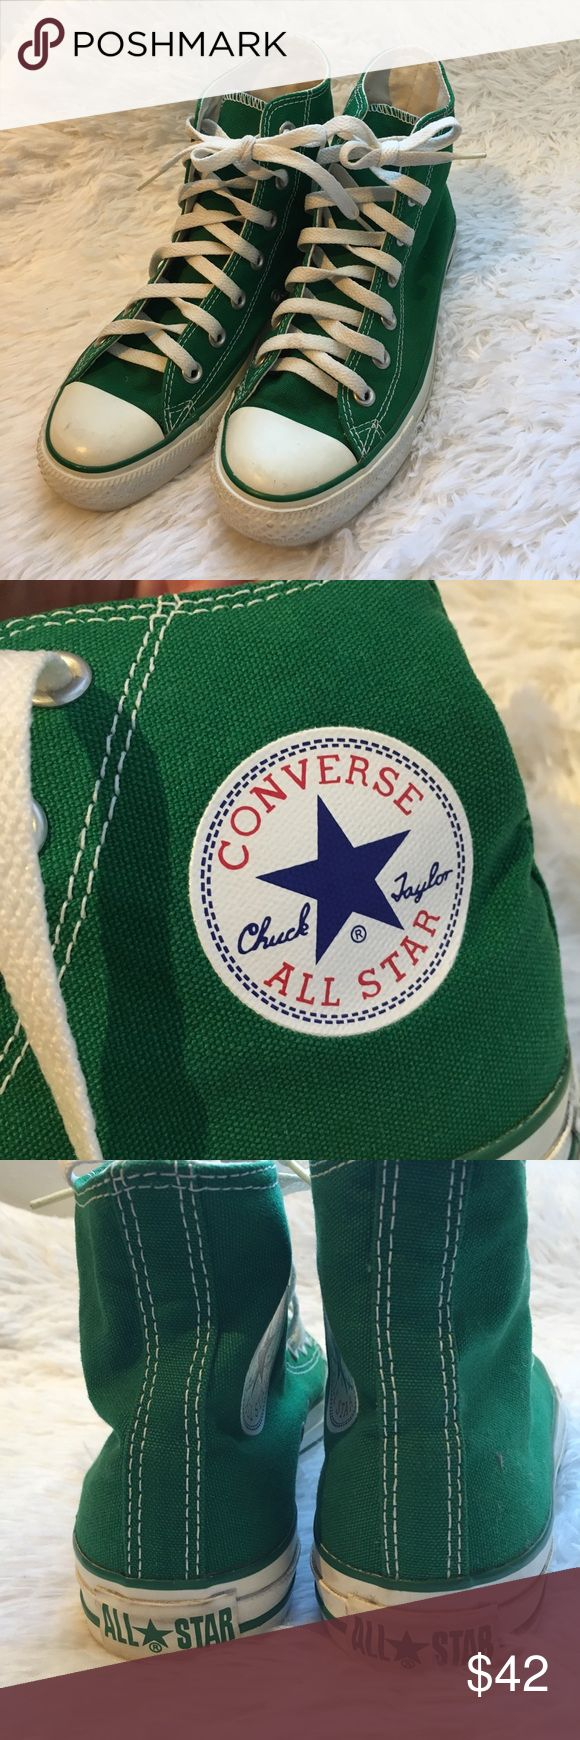 Converse High Tops in Green Converse high tops in green, excellent condition! No wear on bottom. Women size 7 Men's size 5 Converse Shoes Athletic Shoes